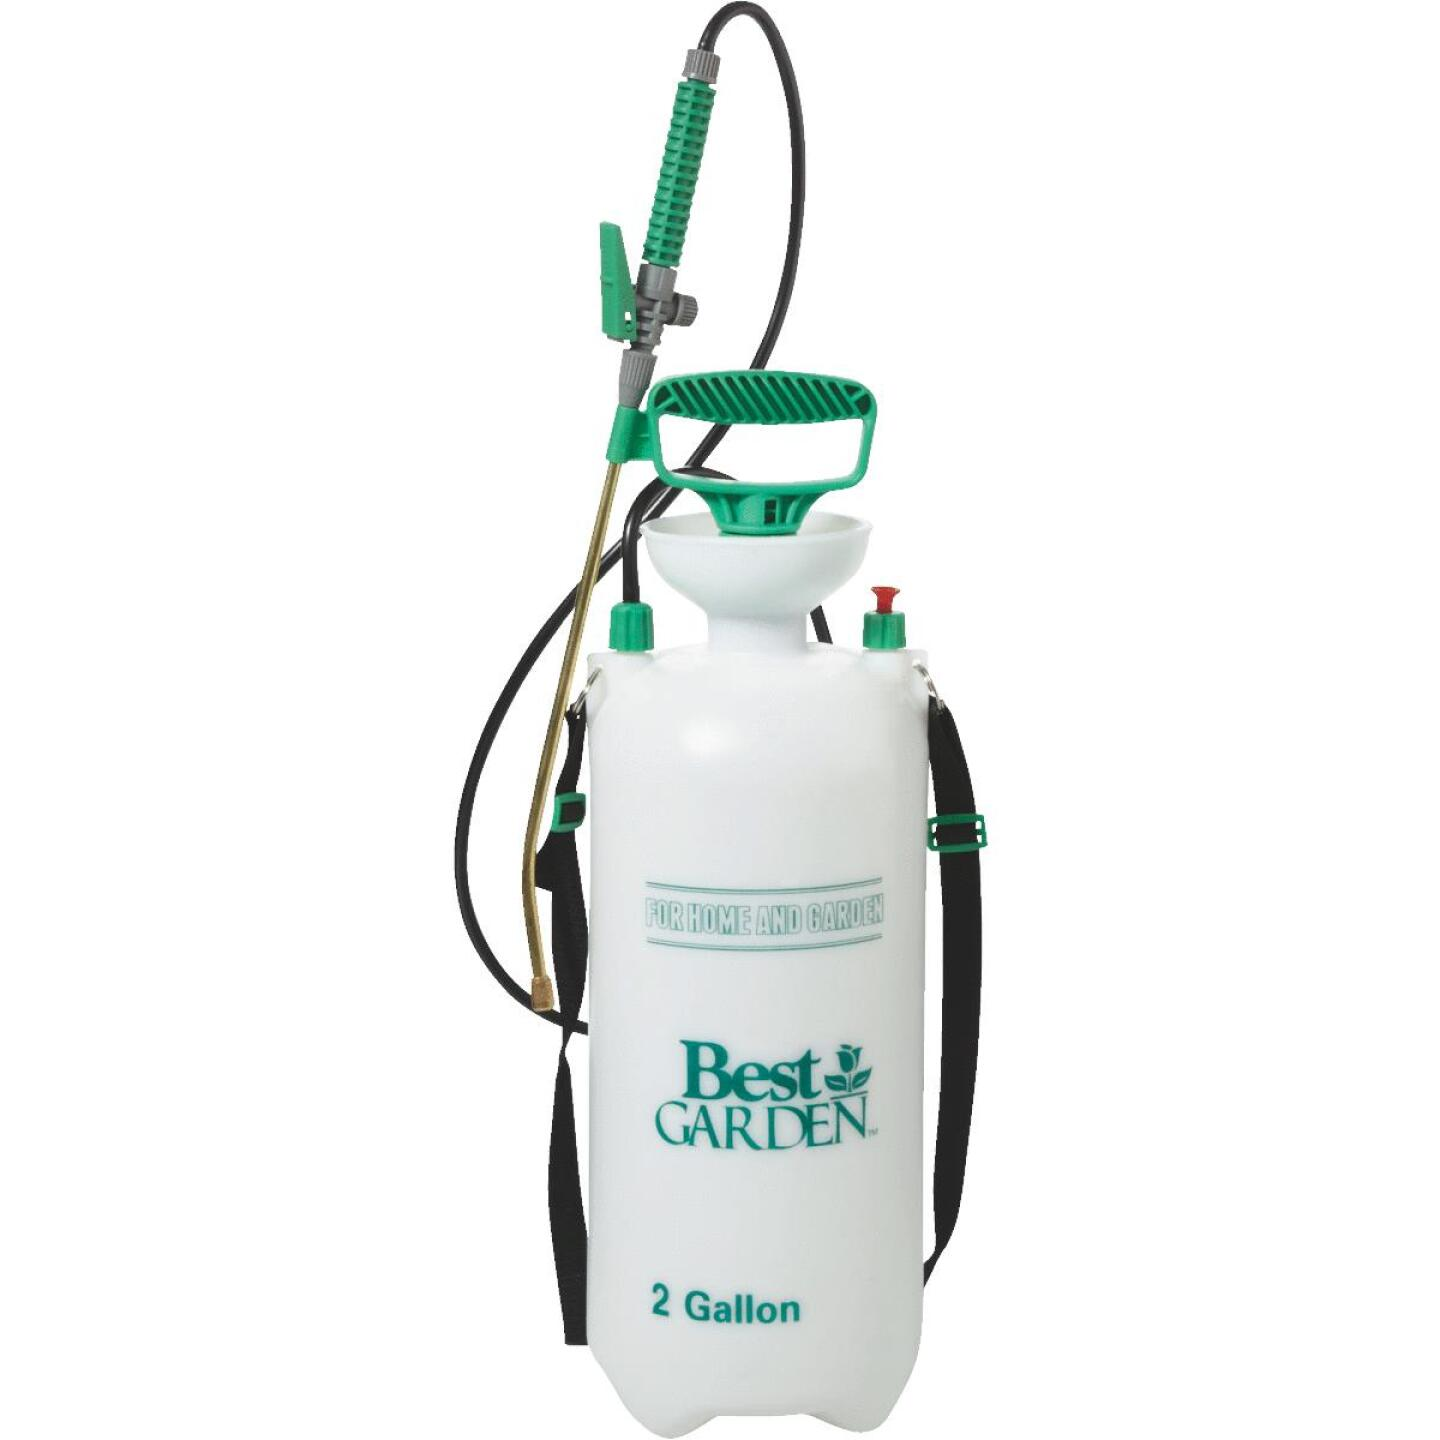 Best Garden 2 Gal. Tank Sprayer with Brass Wand Image 1